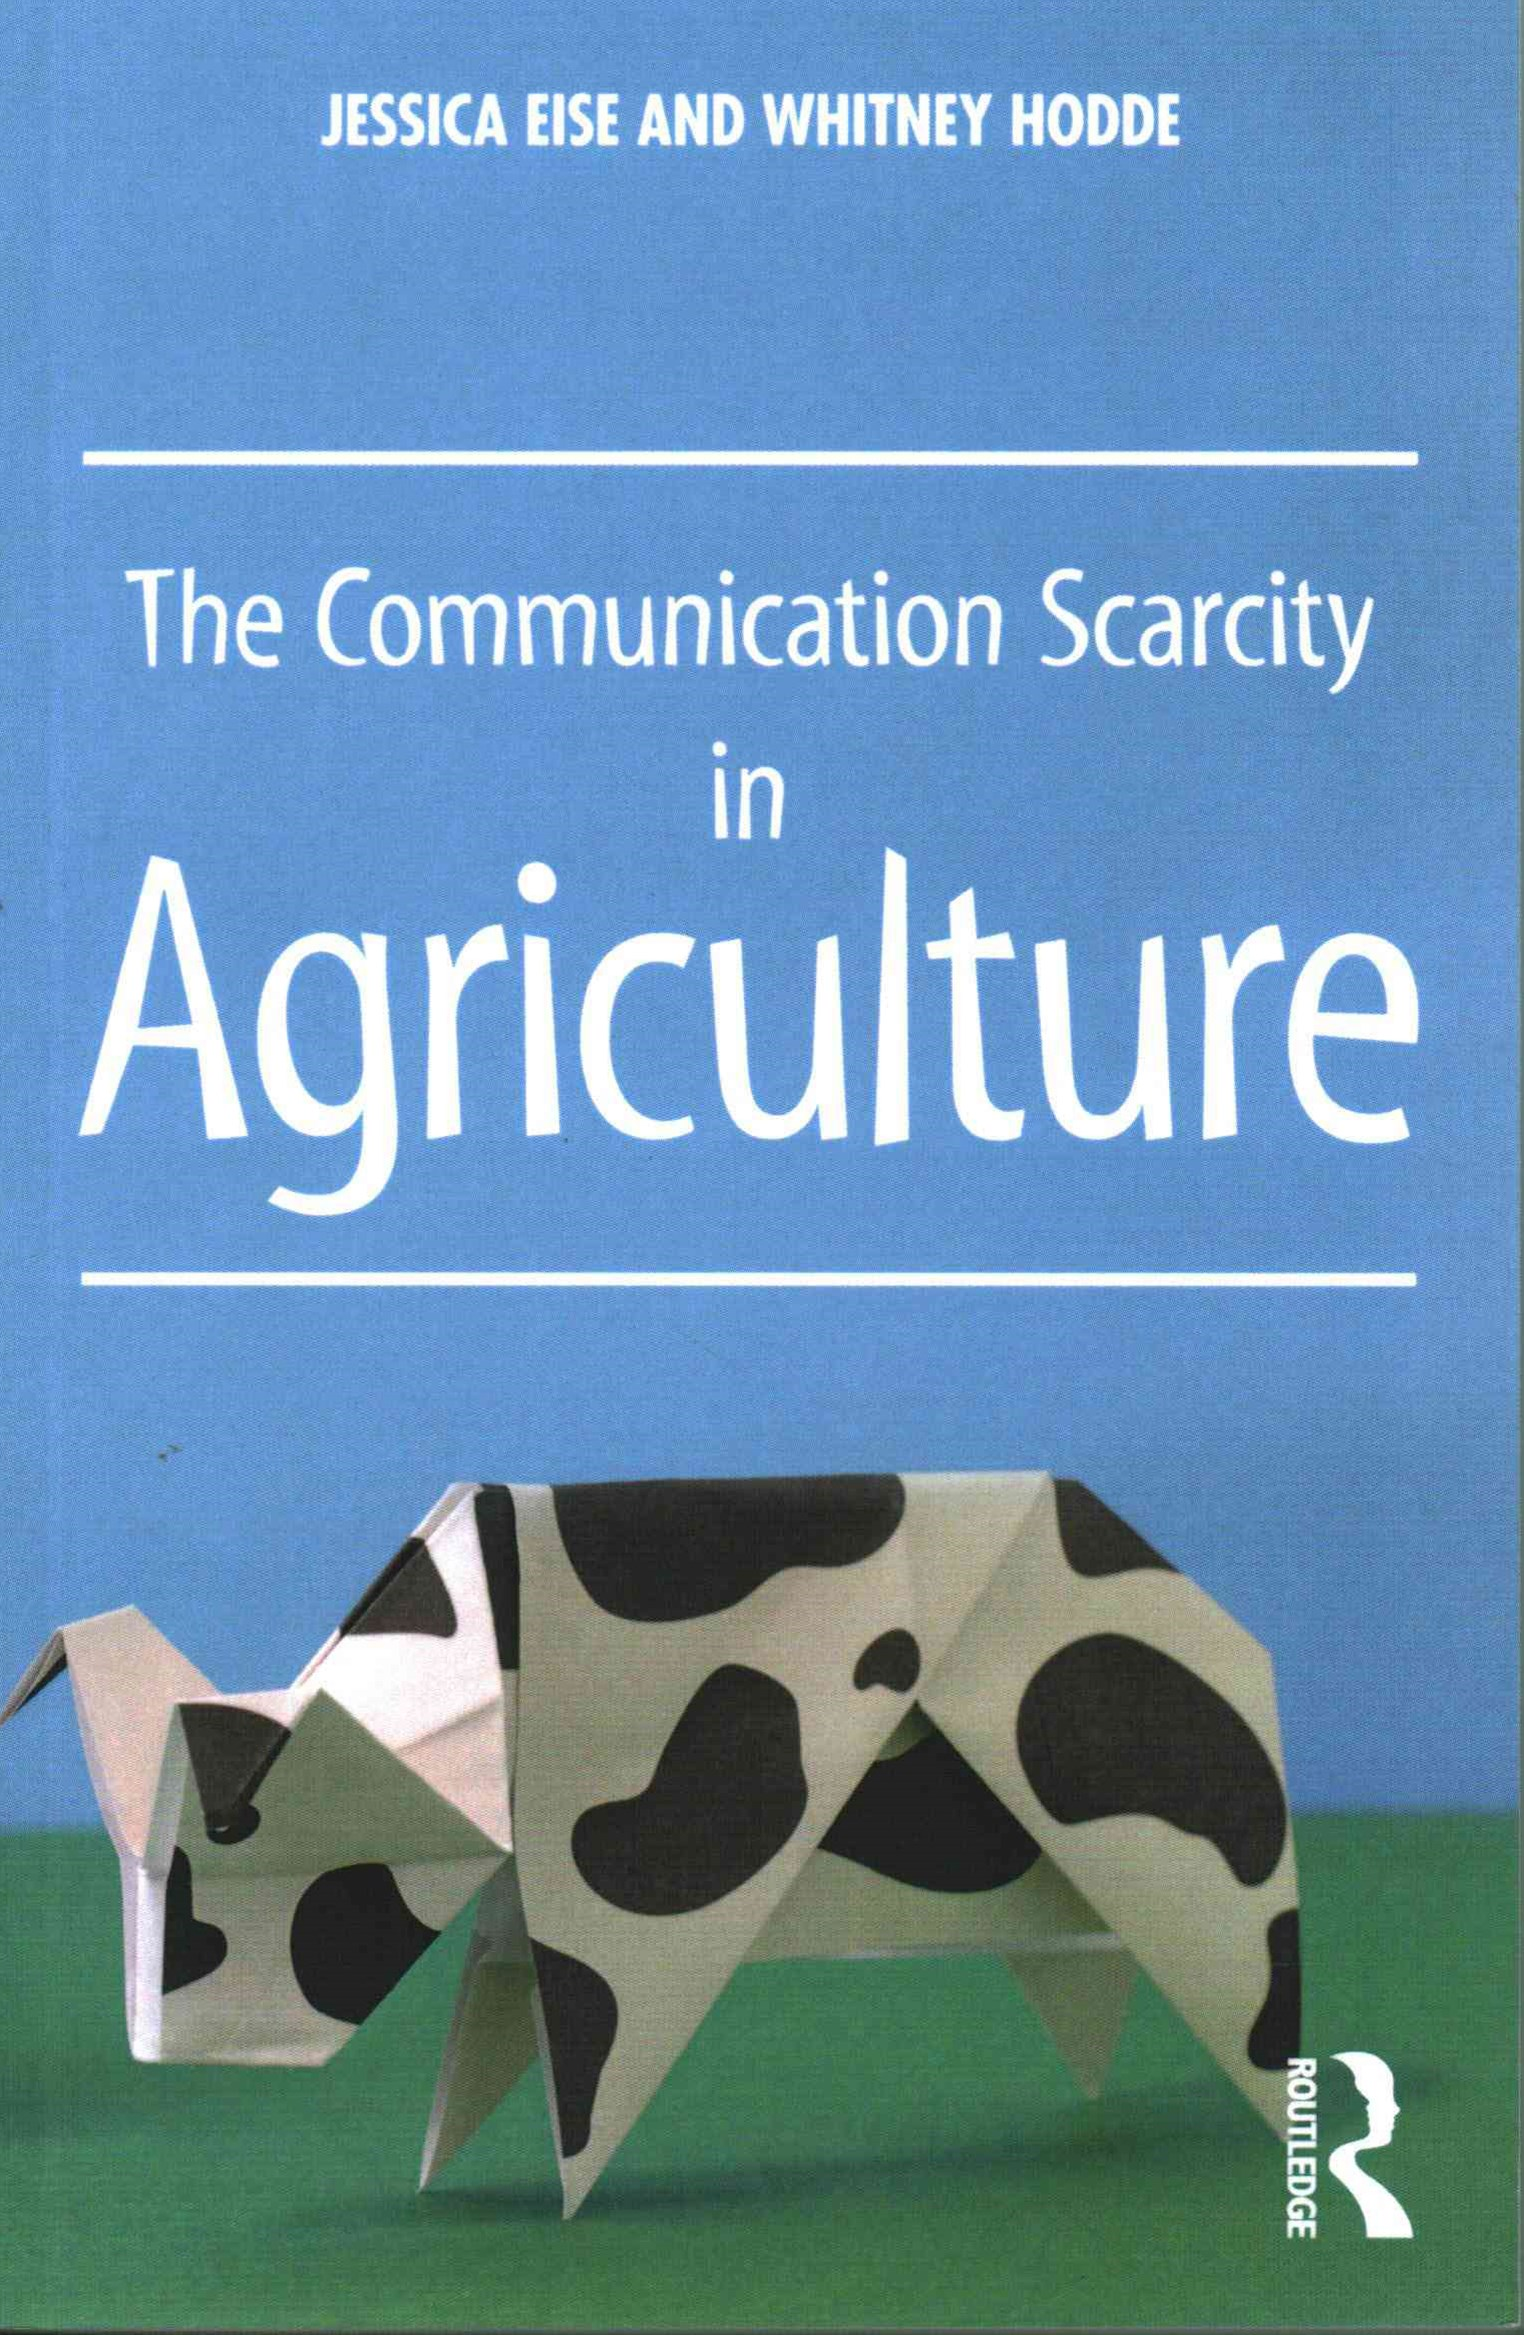 The Communication Scarcity in Agriculture